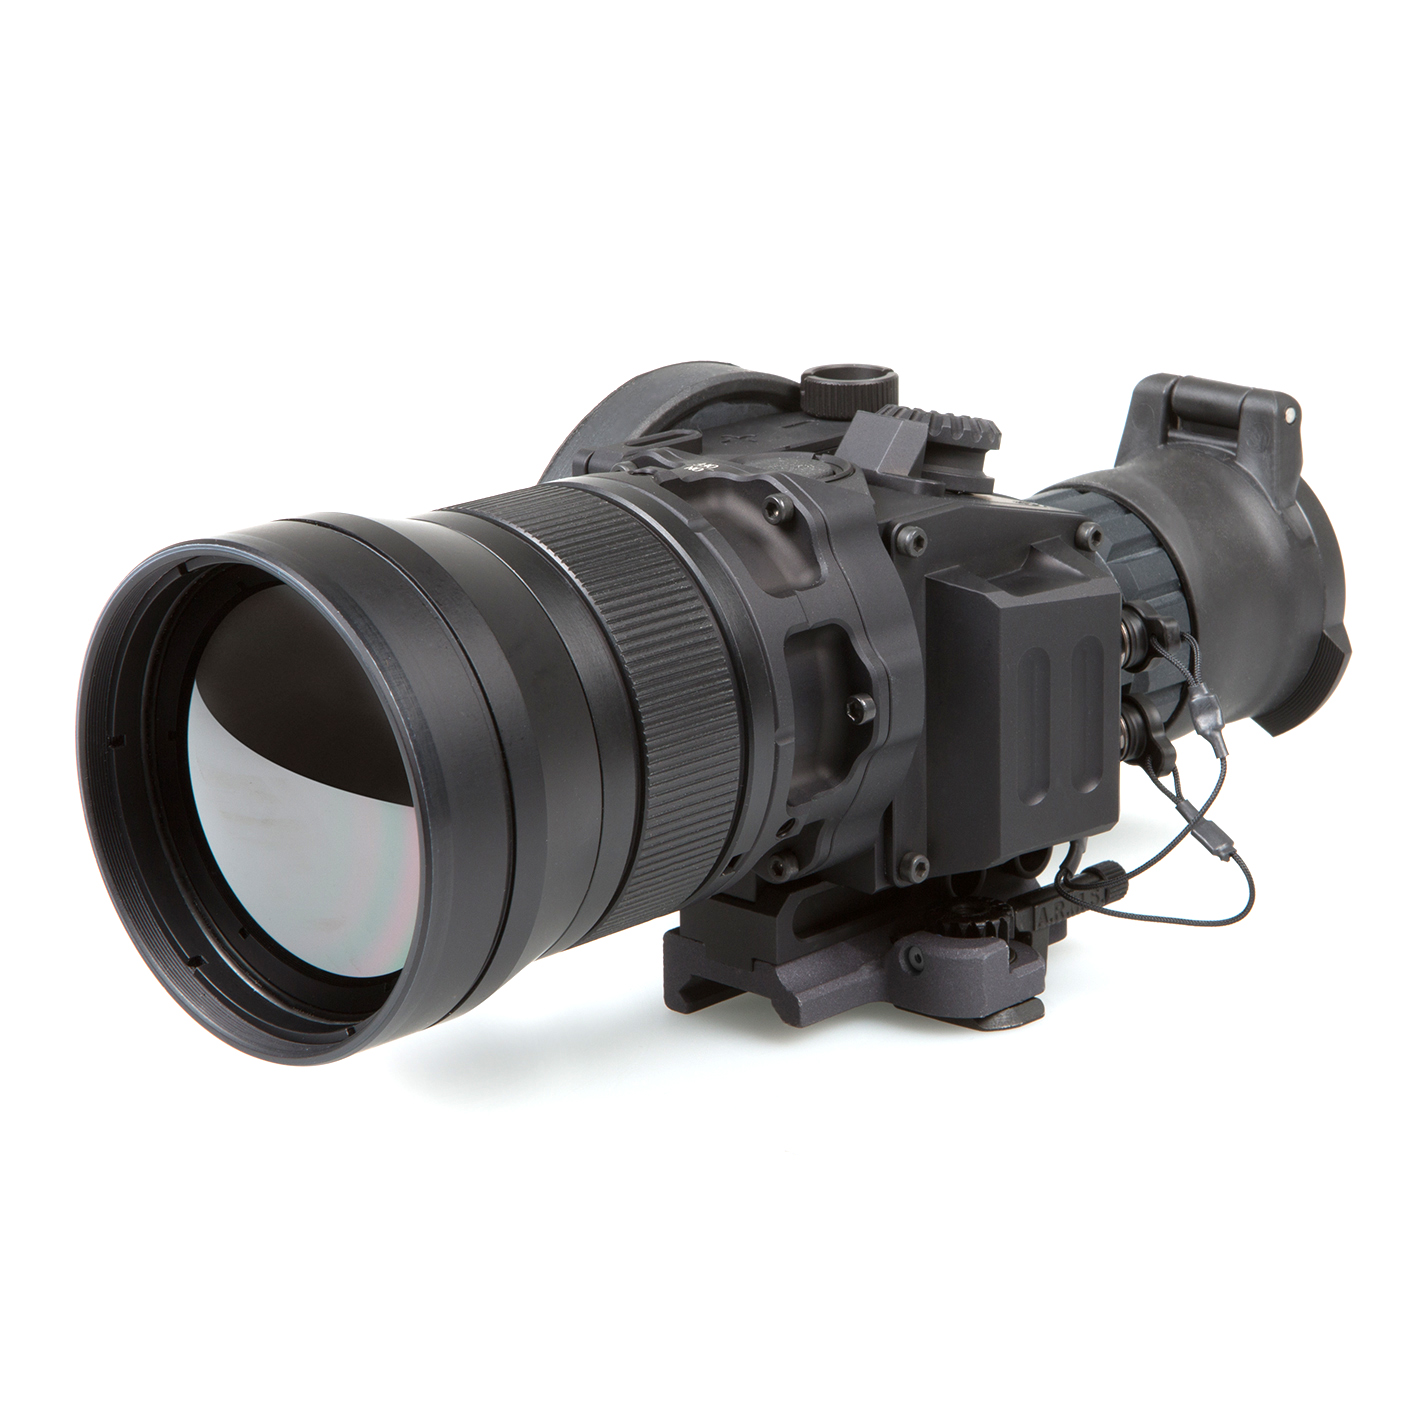 LW75 Thermal Weapon Sight